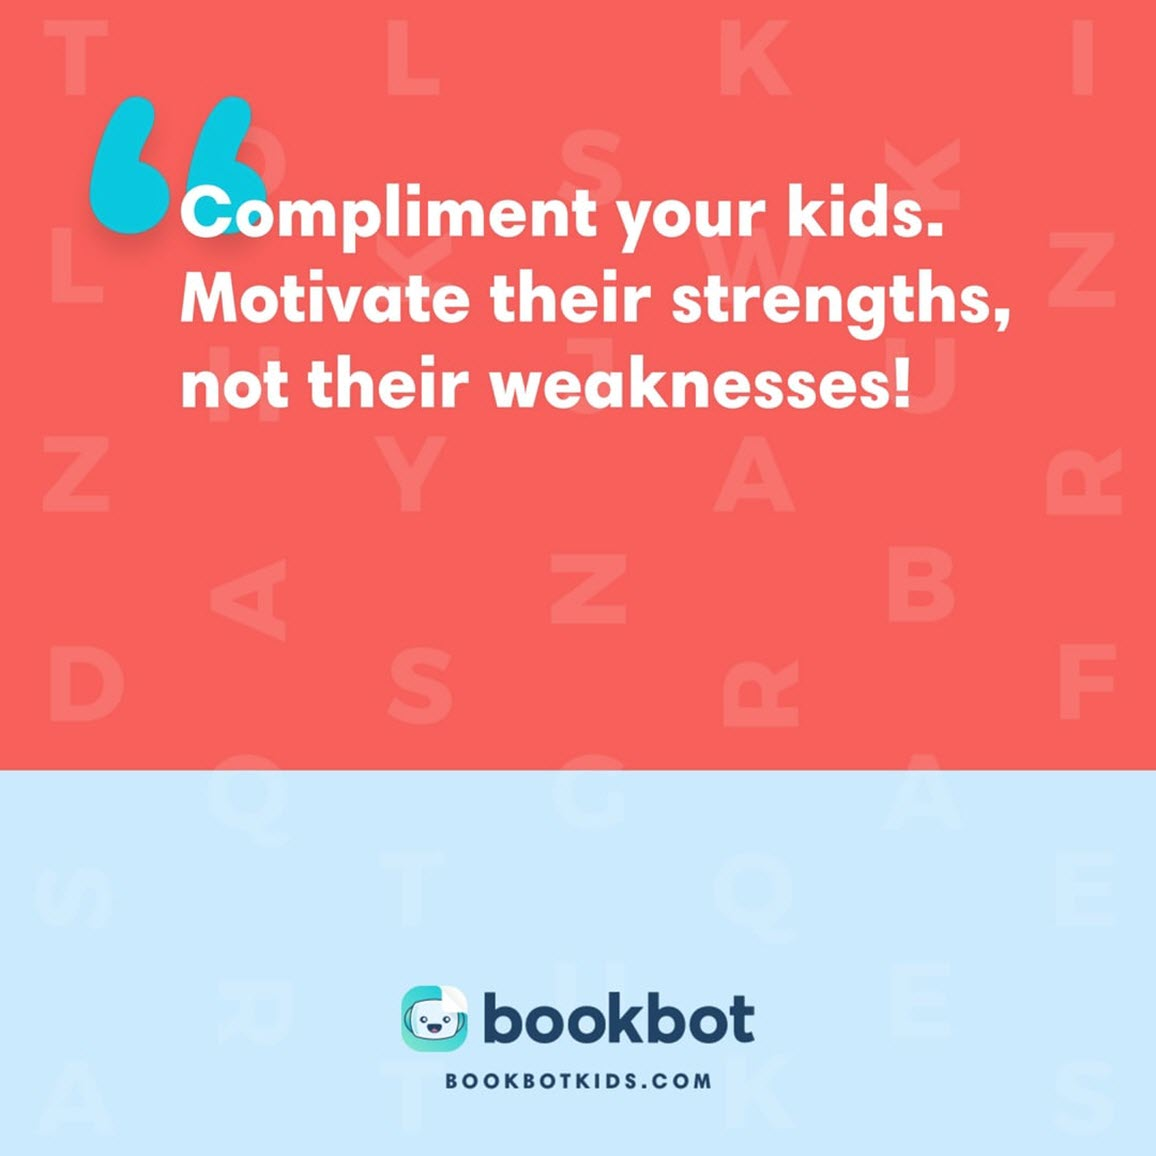 Compliment your kids. Motivate their strengths, not their weaknesses!